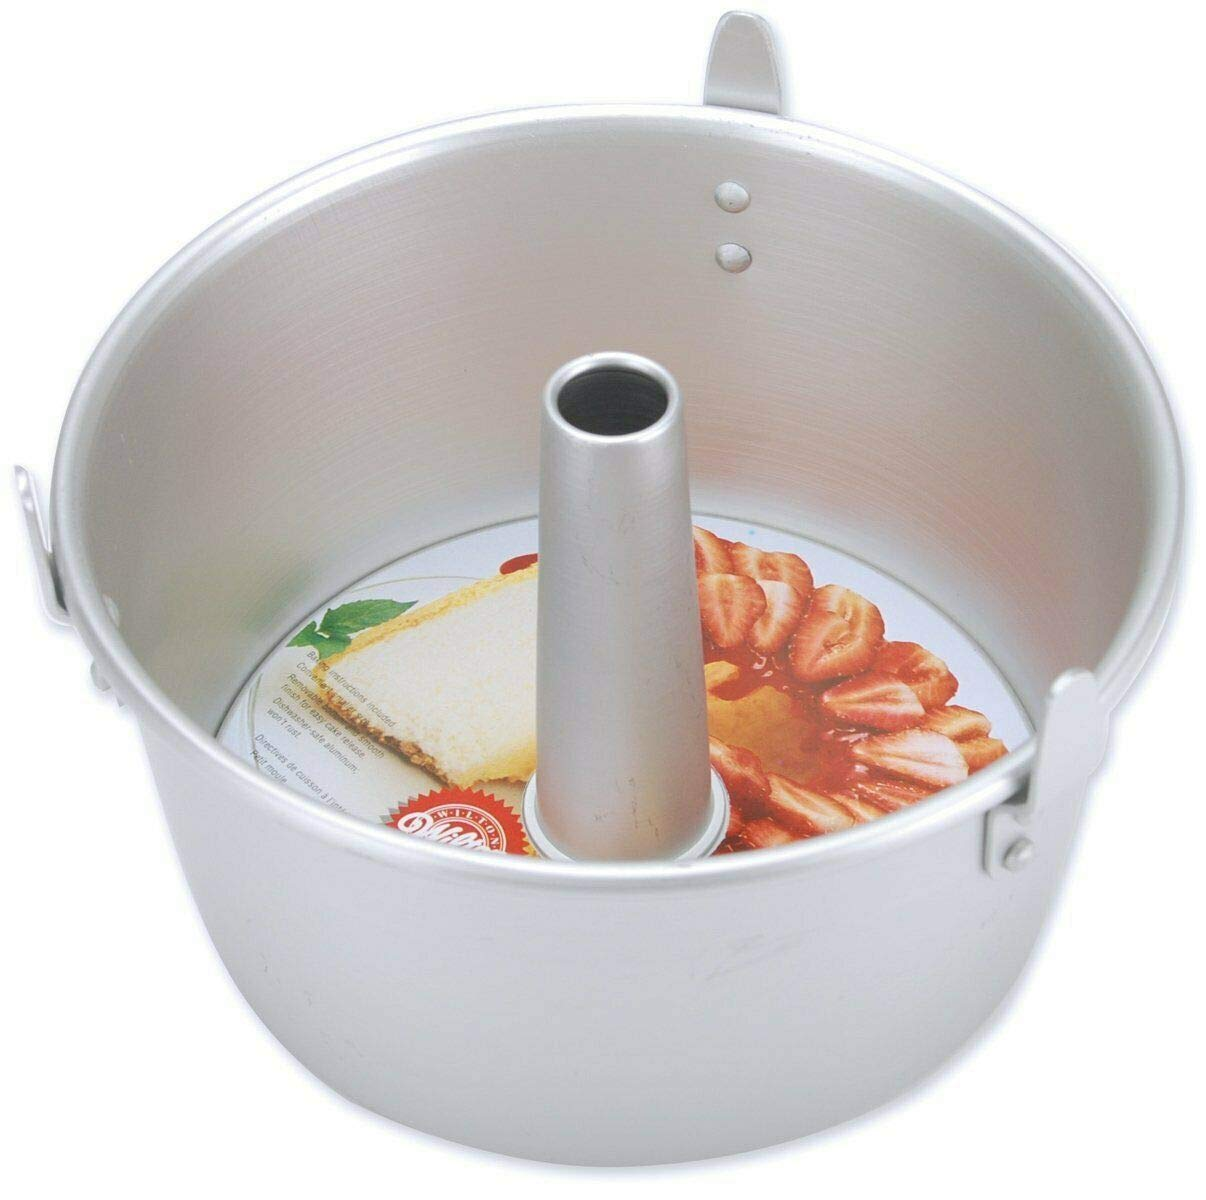 Akkapeary 7x4.5'' 2-Piece Aluminum Angel Food Cake Pan Set w/Removable Inner Sleeve Dishwasher safe Silver